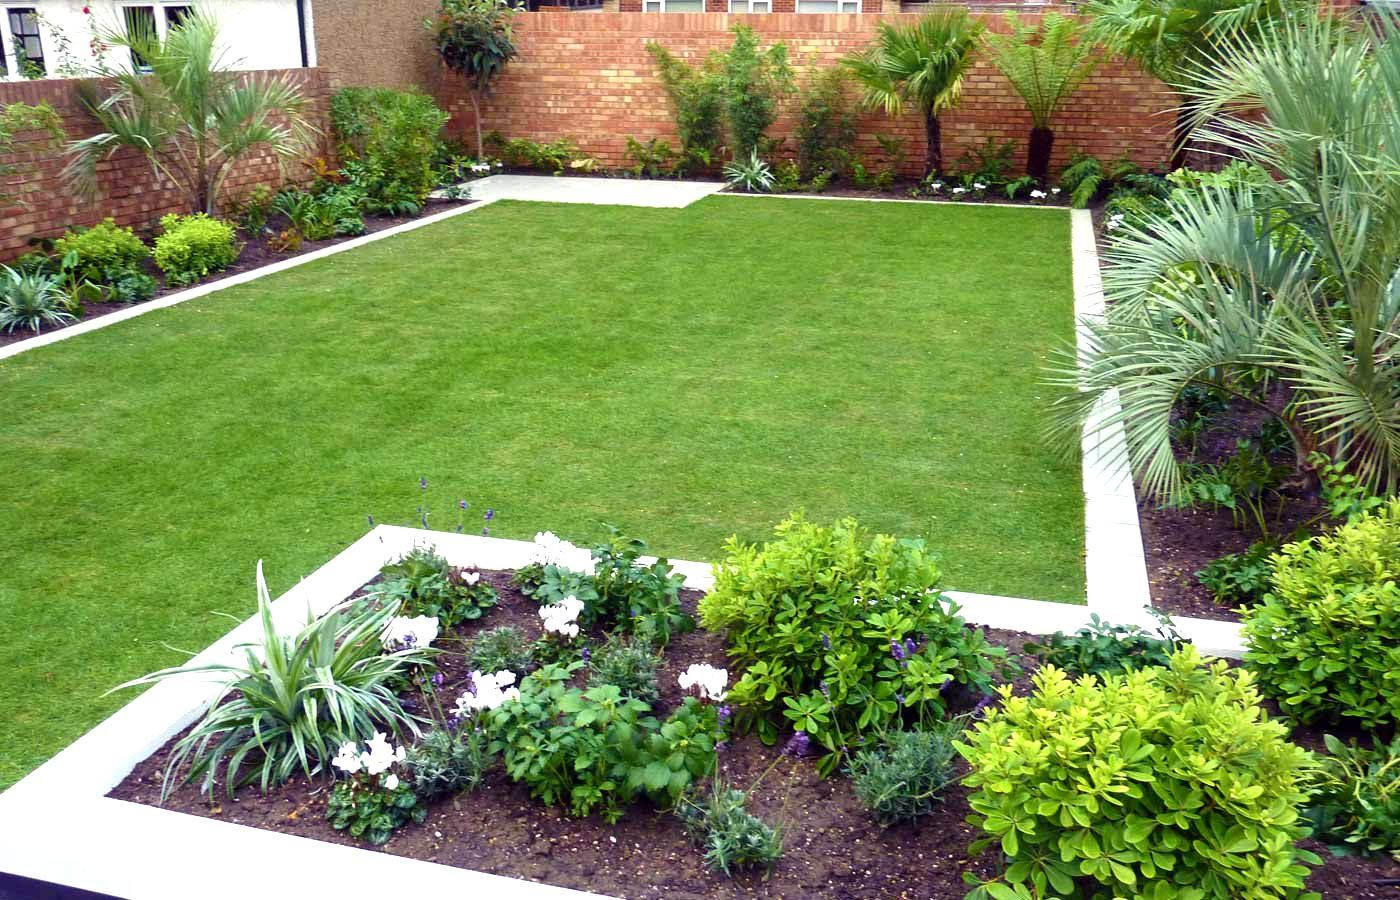 Simple garden designs no fret small garden design for Outdoor garden designs